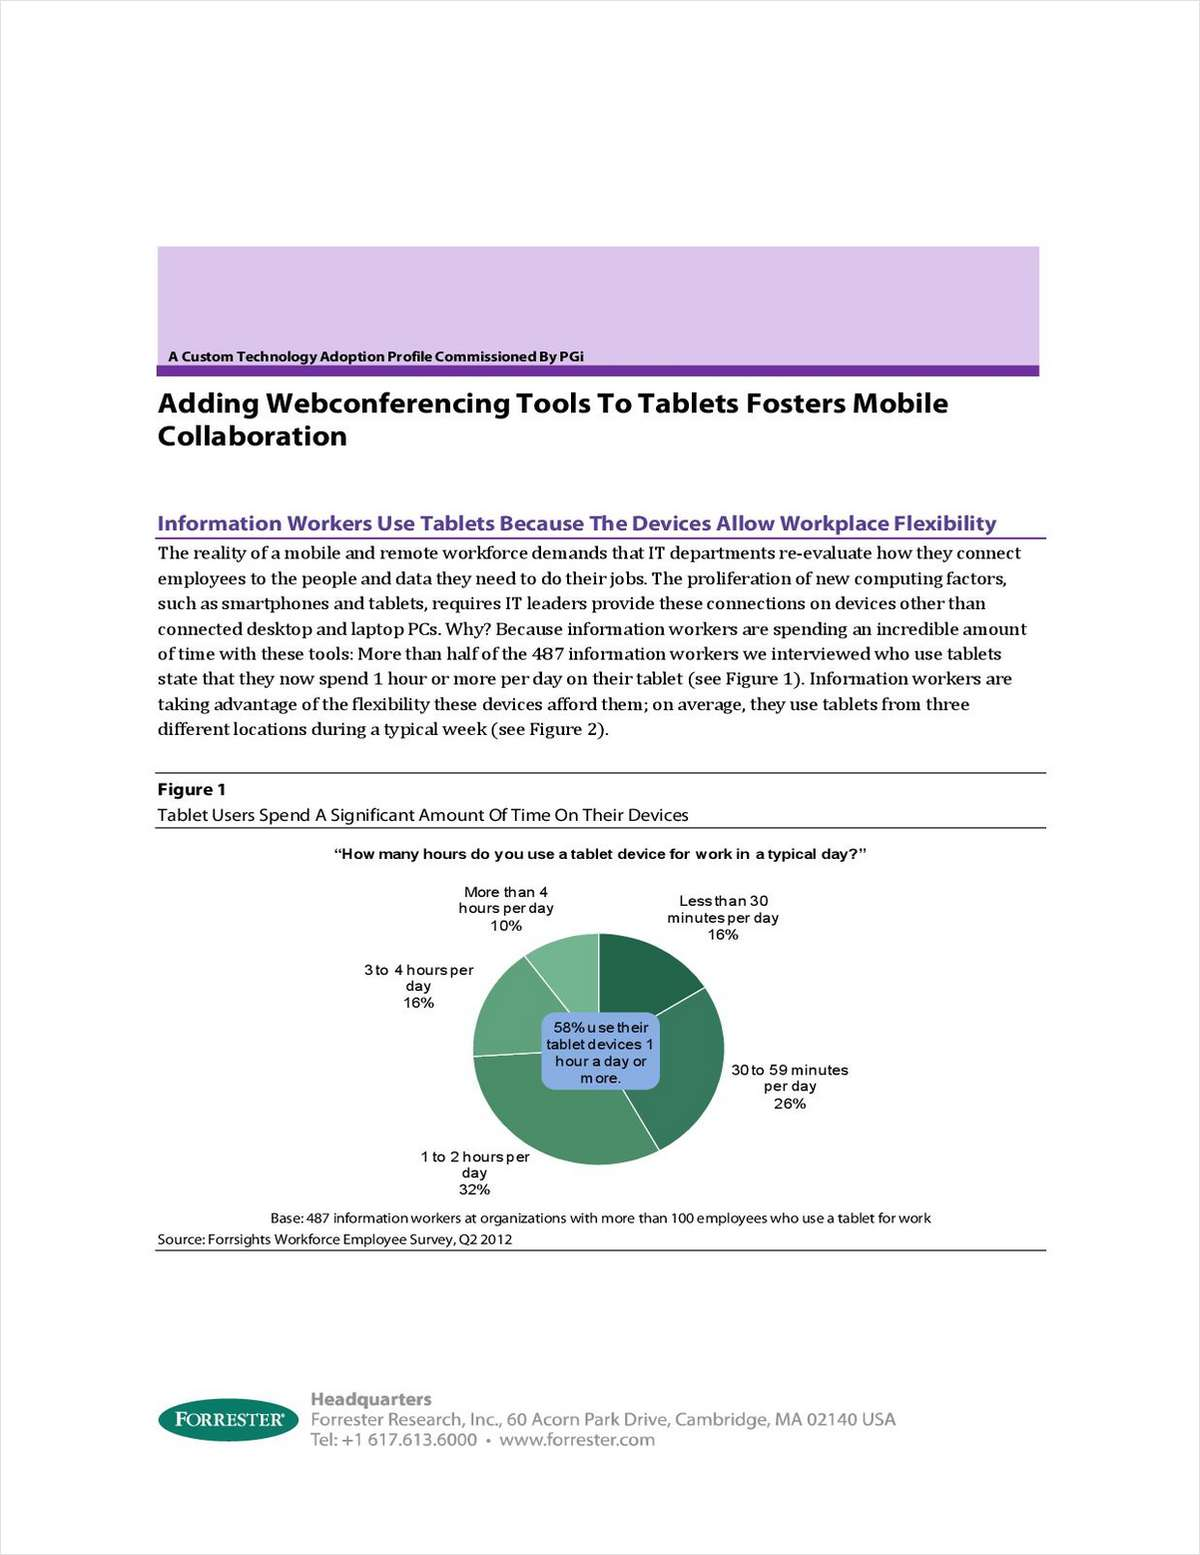 Adding Webconferencing Tools To Tablets Fosters Mobile Collaboration